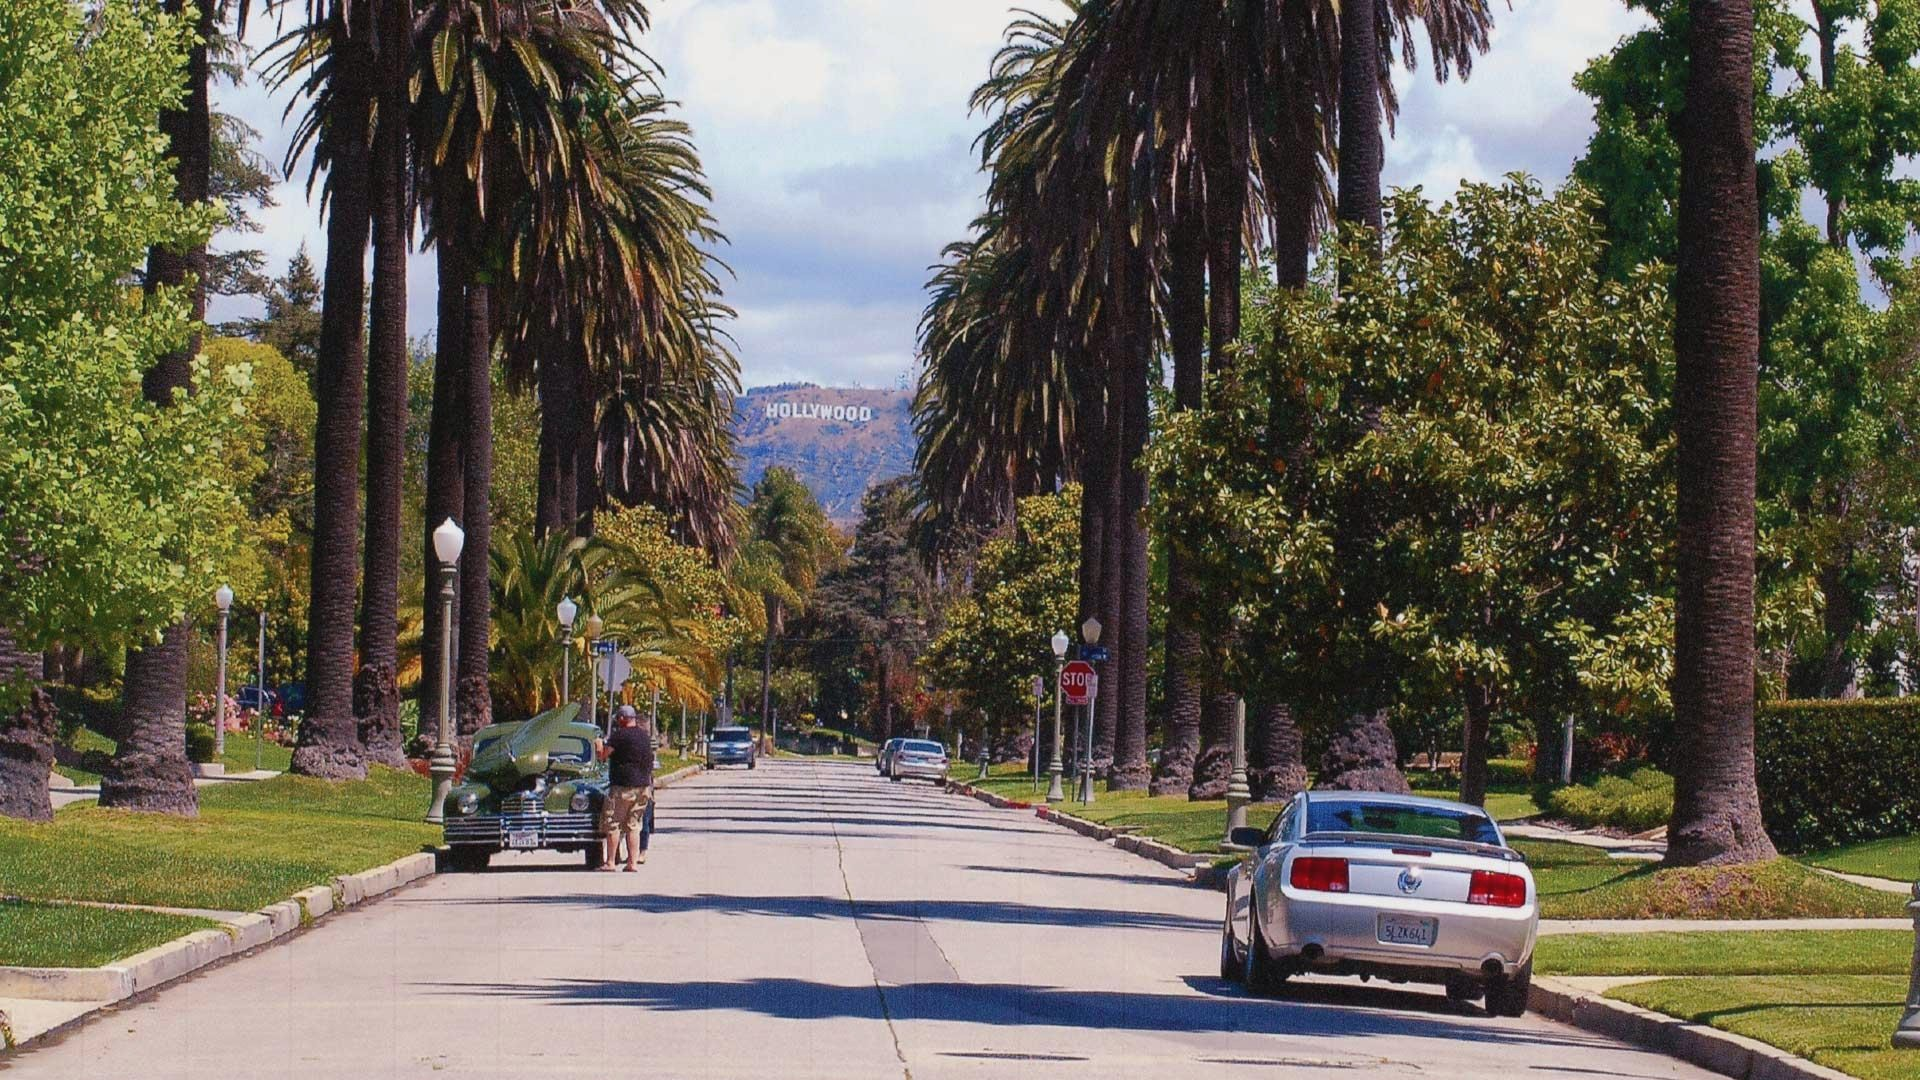 Los Angeles is not all freeway. There are beautiful neighborhoods, but these can be easy to get lost in too. Take your time, plan ahead, and maintain a safe distance from other drivers to avoid a car crash.